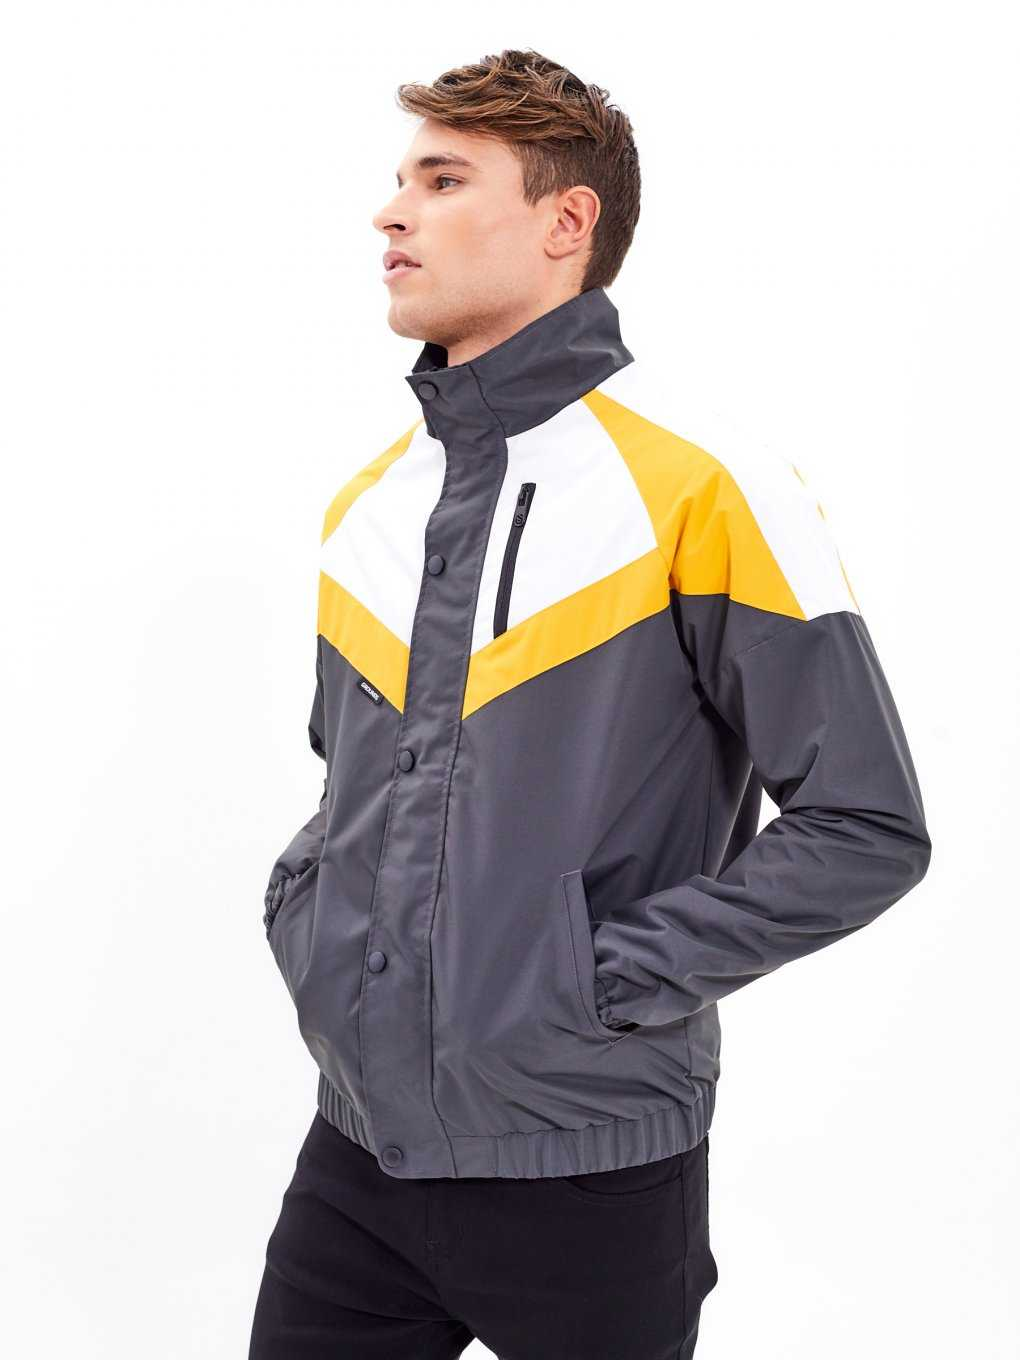 Paneled jacket with stand-up collar